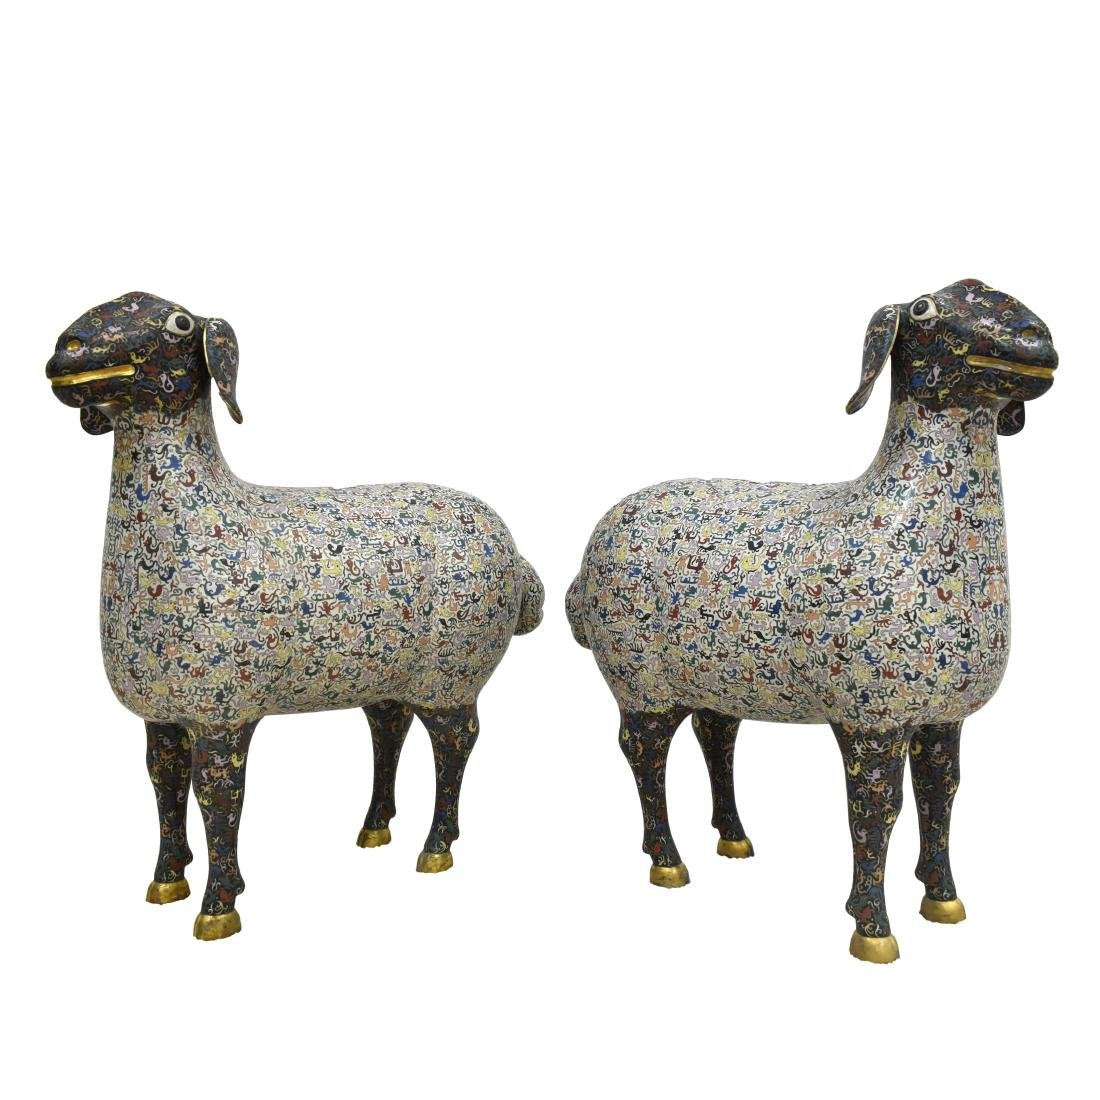 PAIR OF QING LIFE SIZE GILT BRONZE CLOISONNE SHEEP - 2